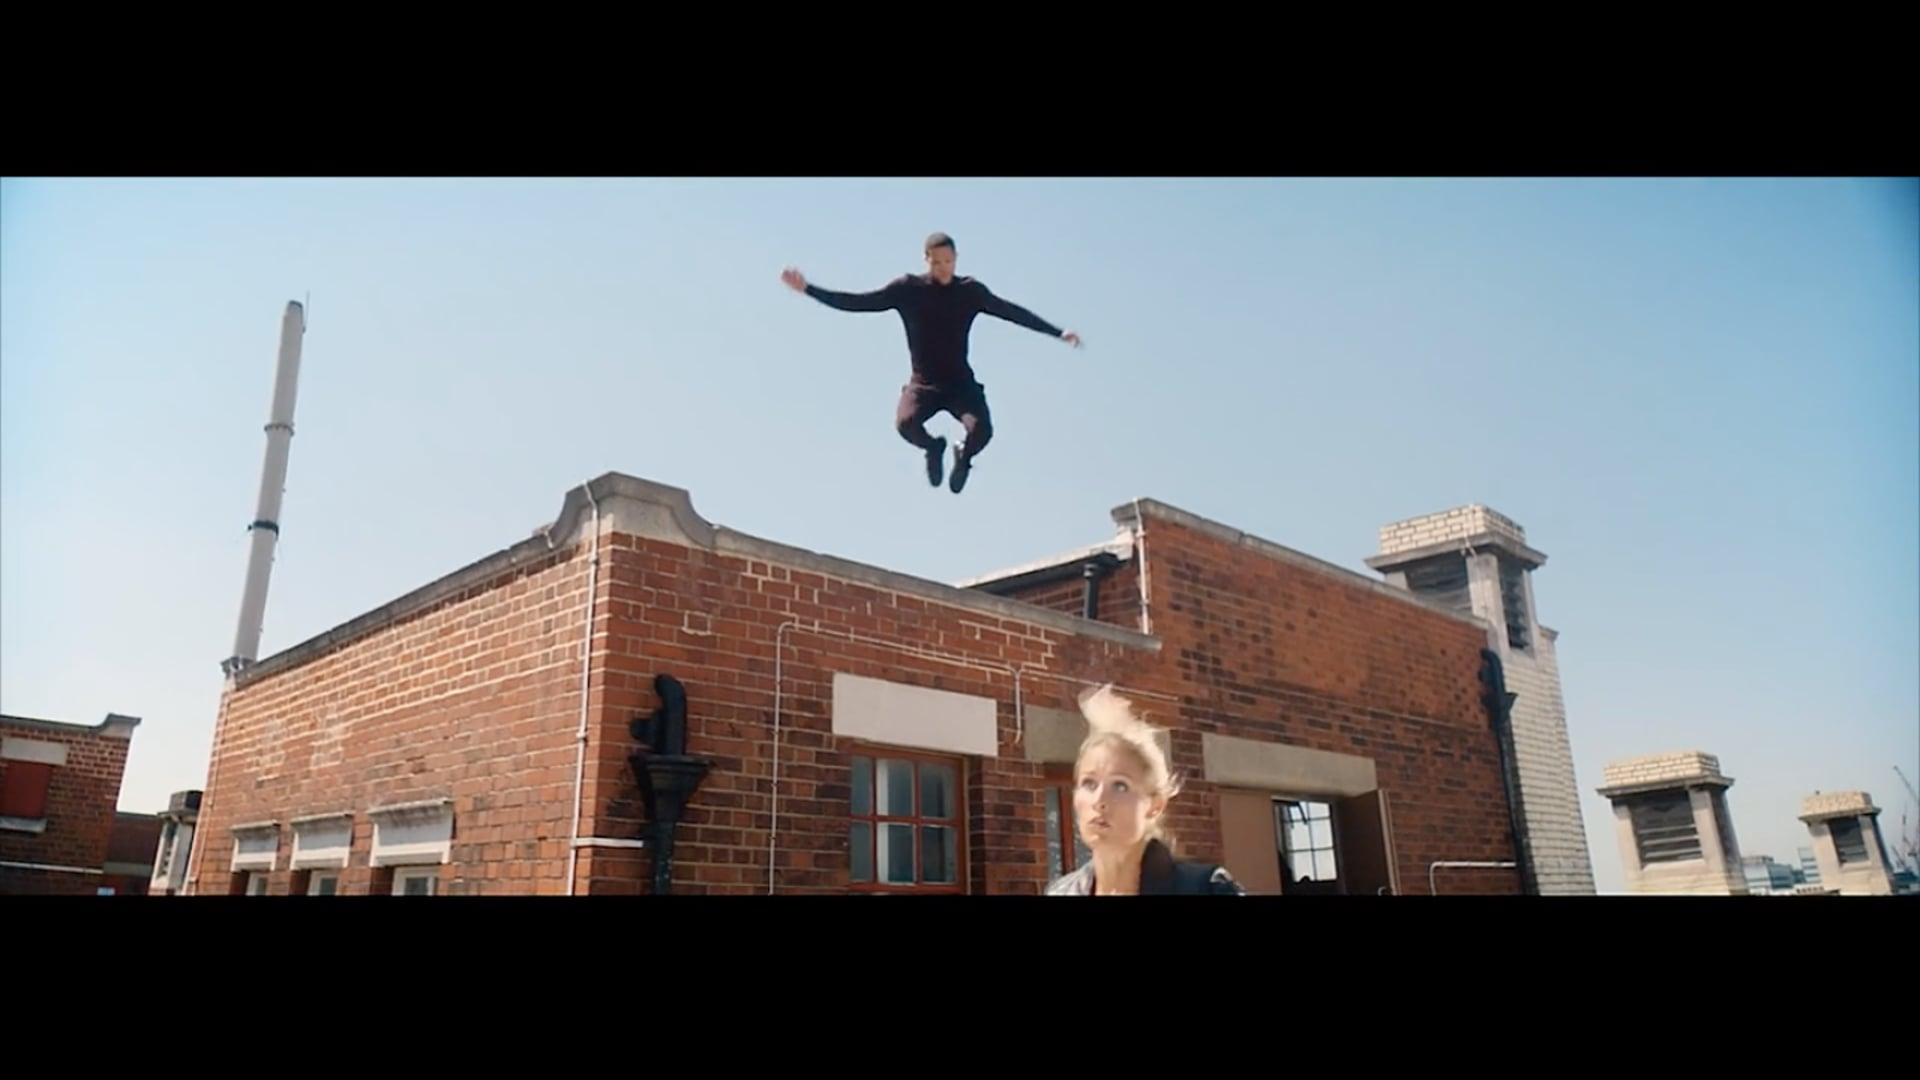 Natwest - Mission Impossible